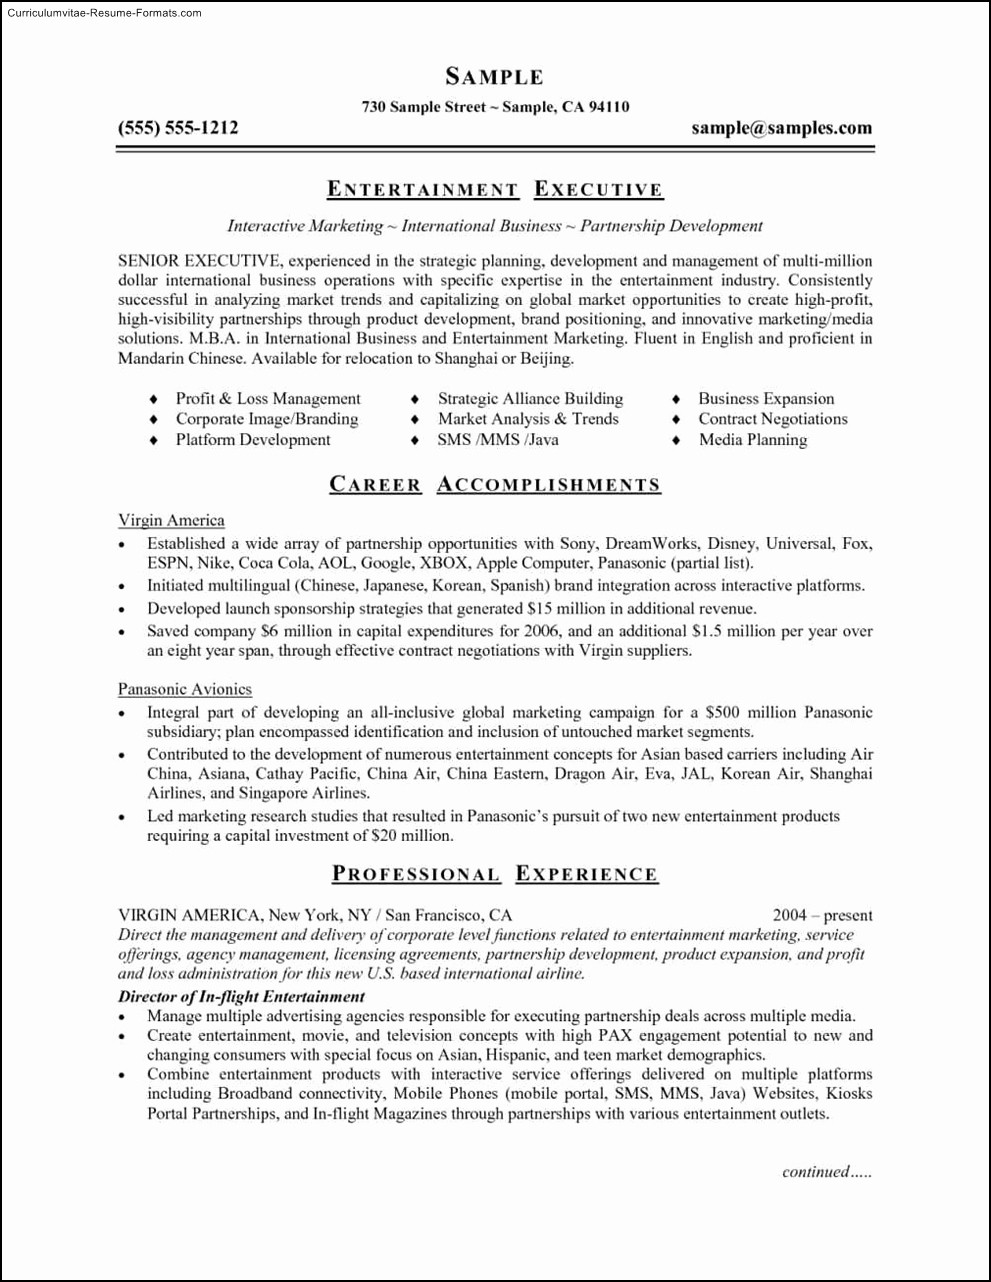 Microsoft Office Online Resume Template Elegant Ms Fice 2007 Resume Templates Free Samples Examples